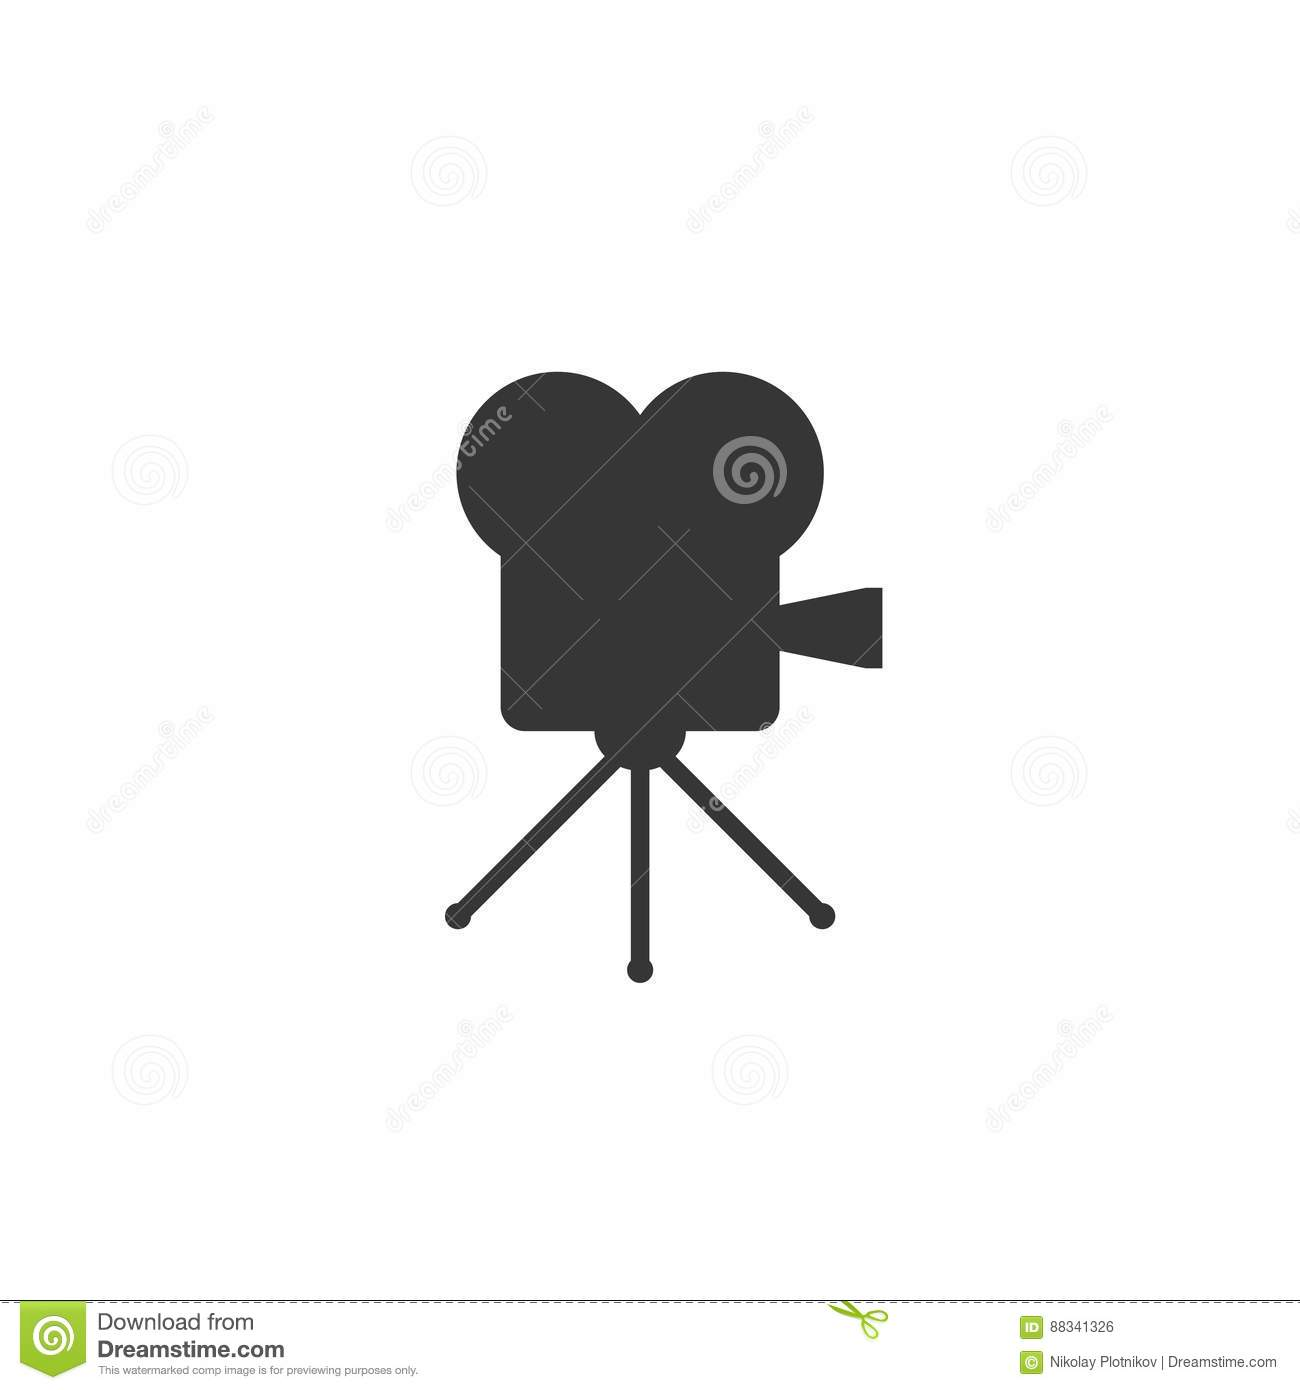 Retro cinema icon isolated on white background. Old movie projector